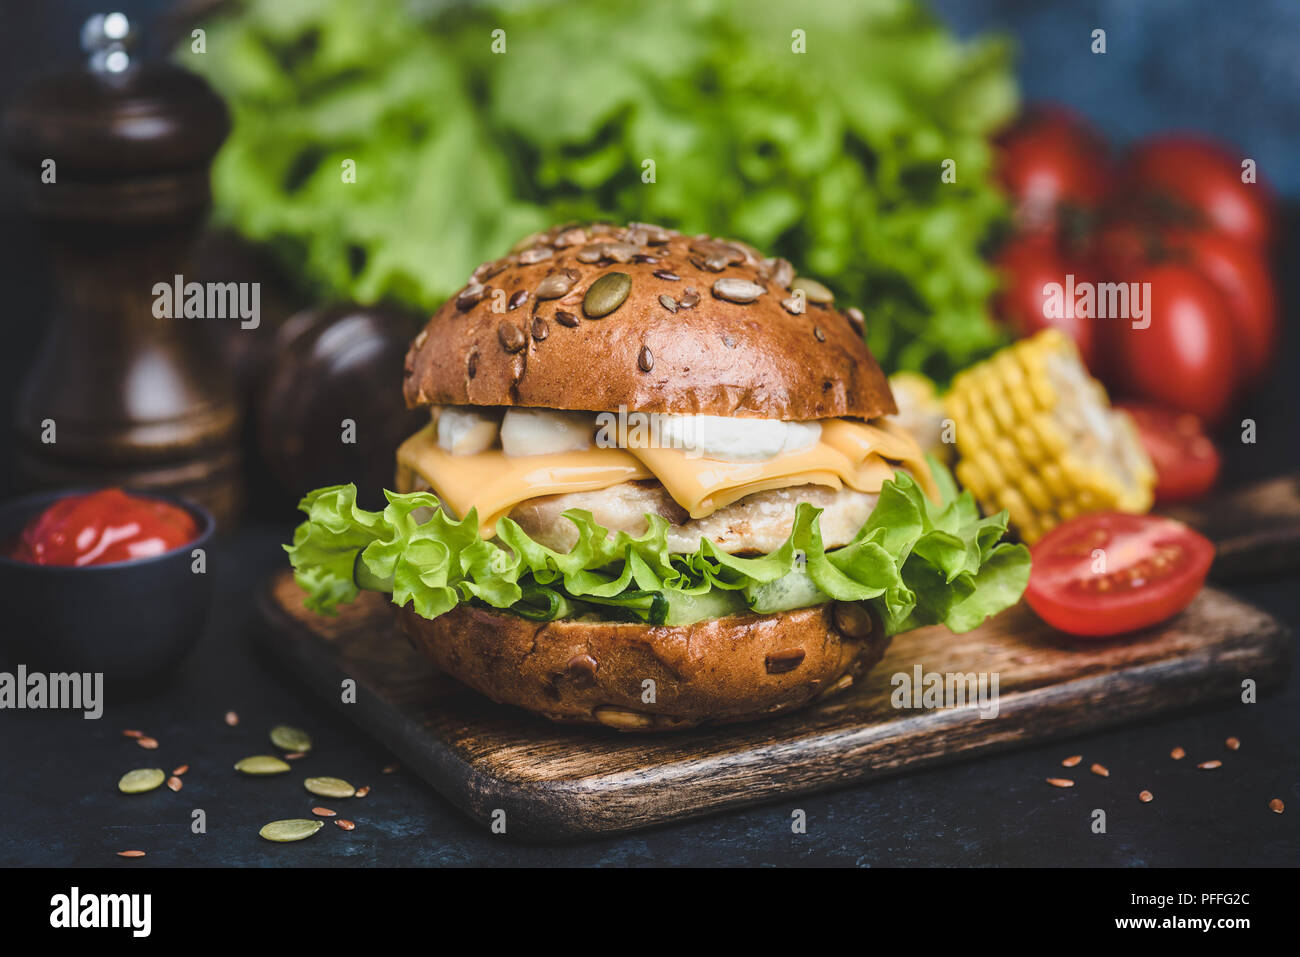 Tasty Chicken Burger On Wooden Serving Board. Cheeseburger With Cheese, White Sauce, Lettuce, Tomatoes. Closeup view, Selective focus - Stock Image